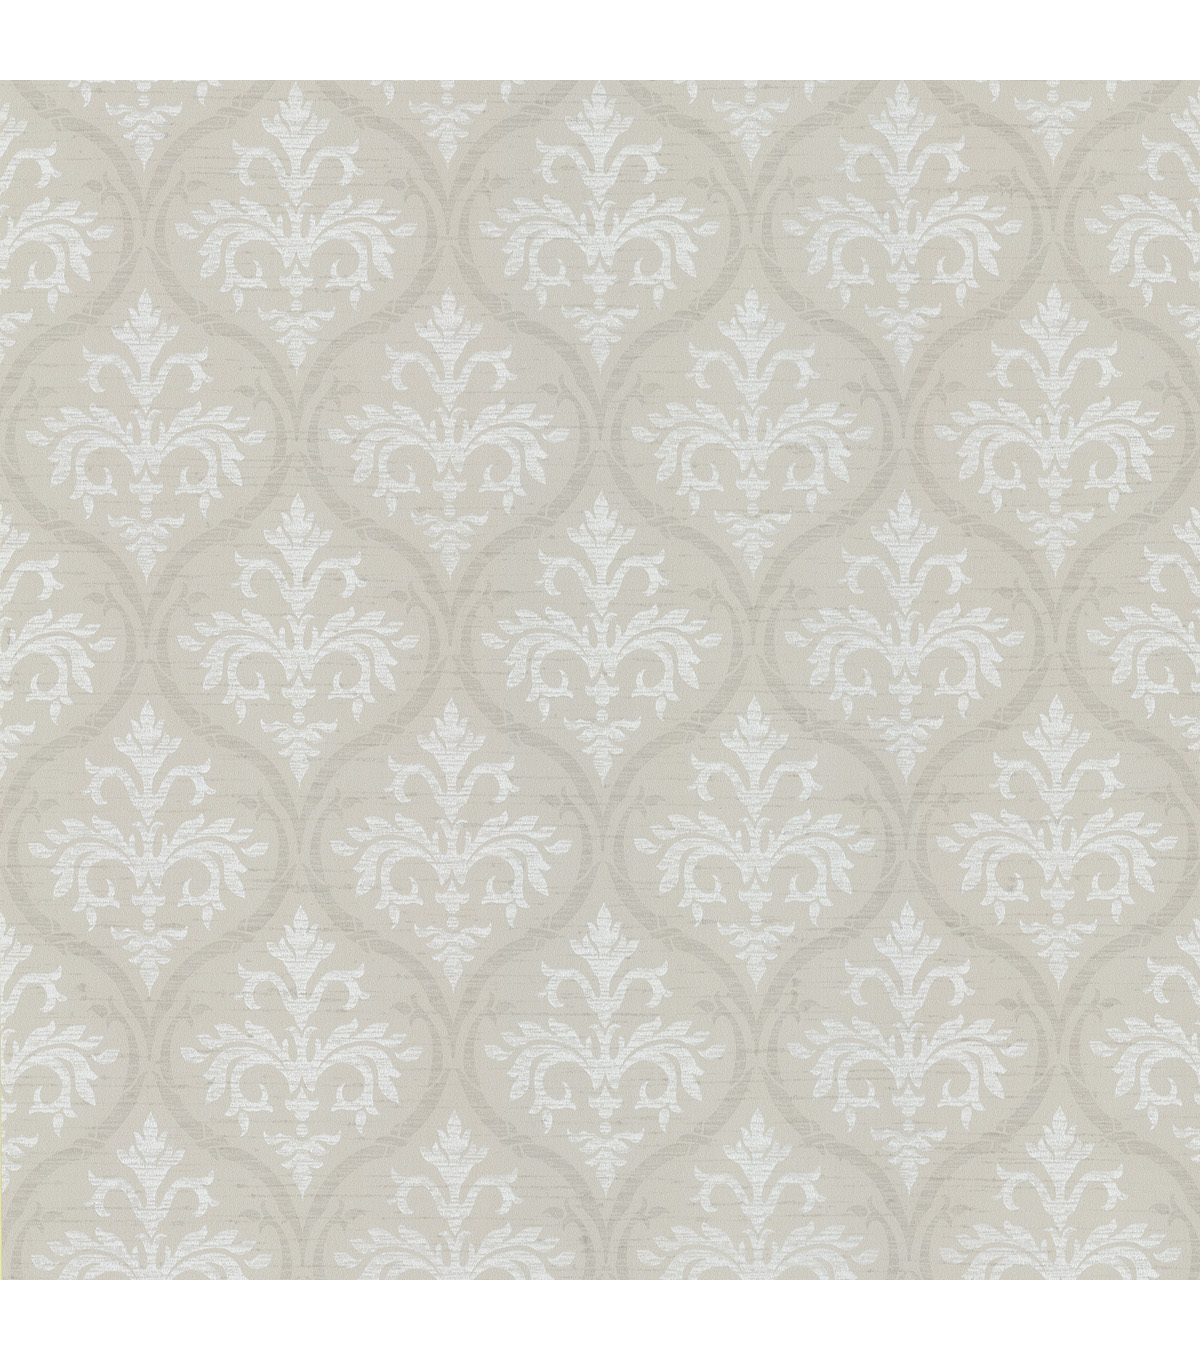 Florence Cream Ogee Damask Wallpaper